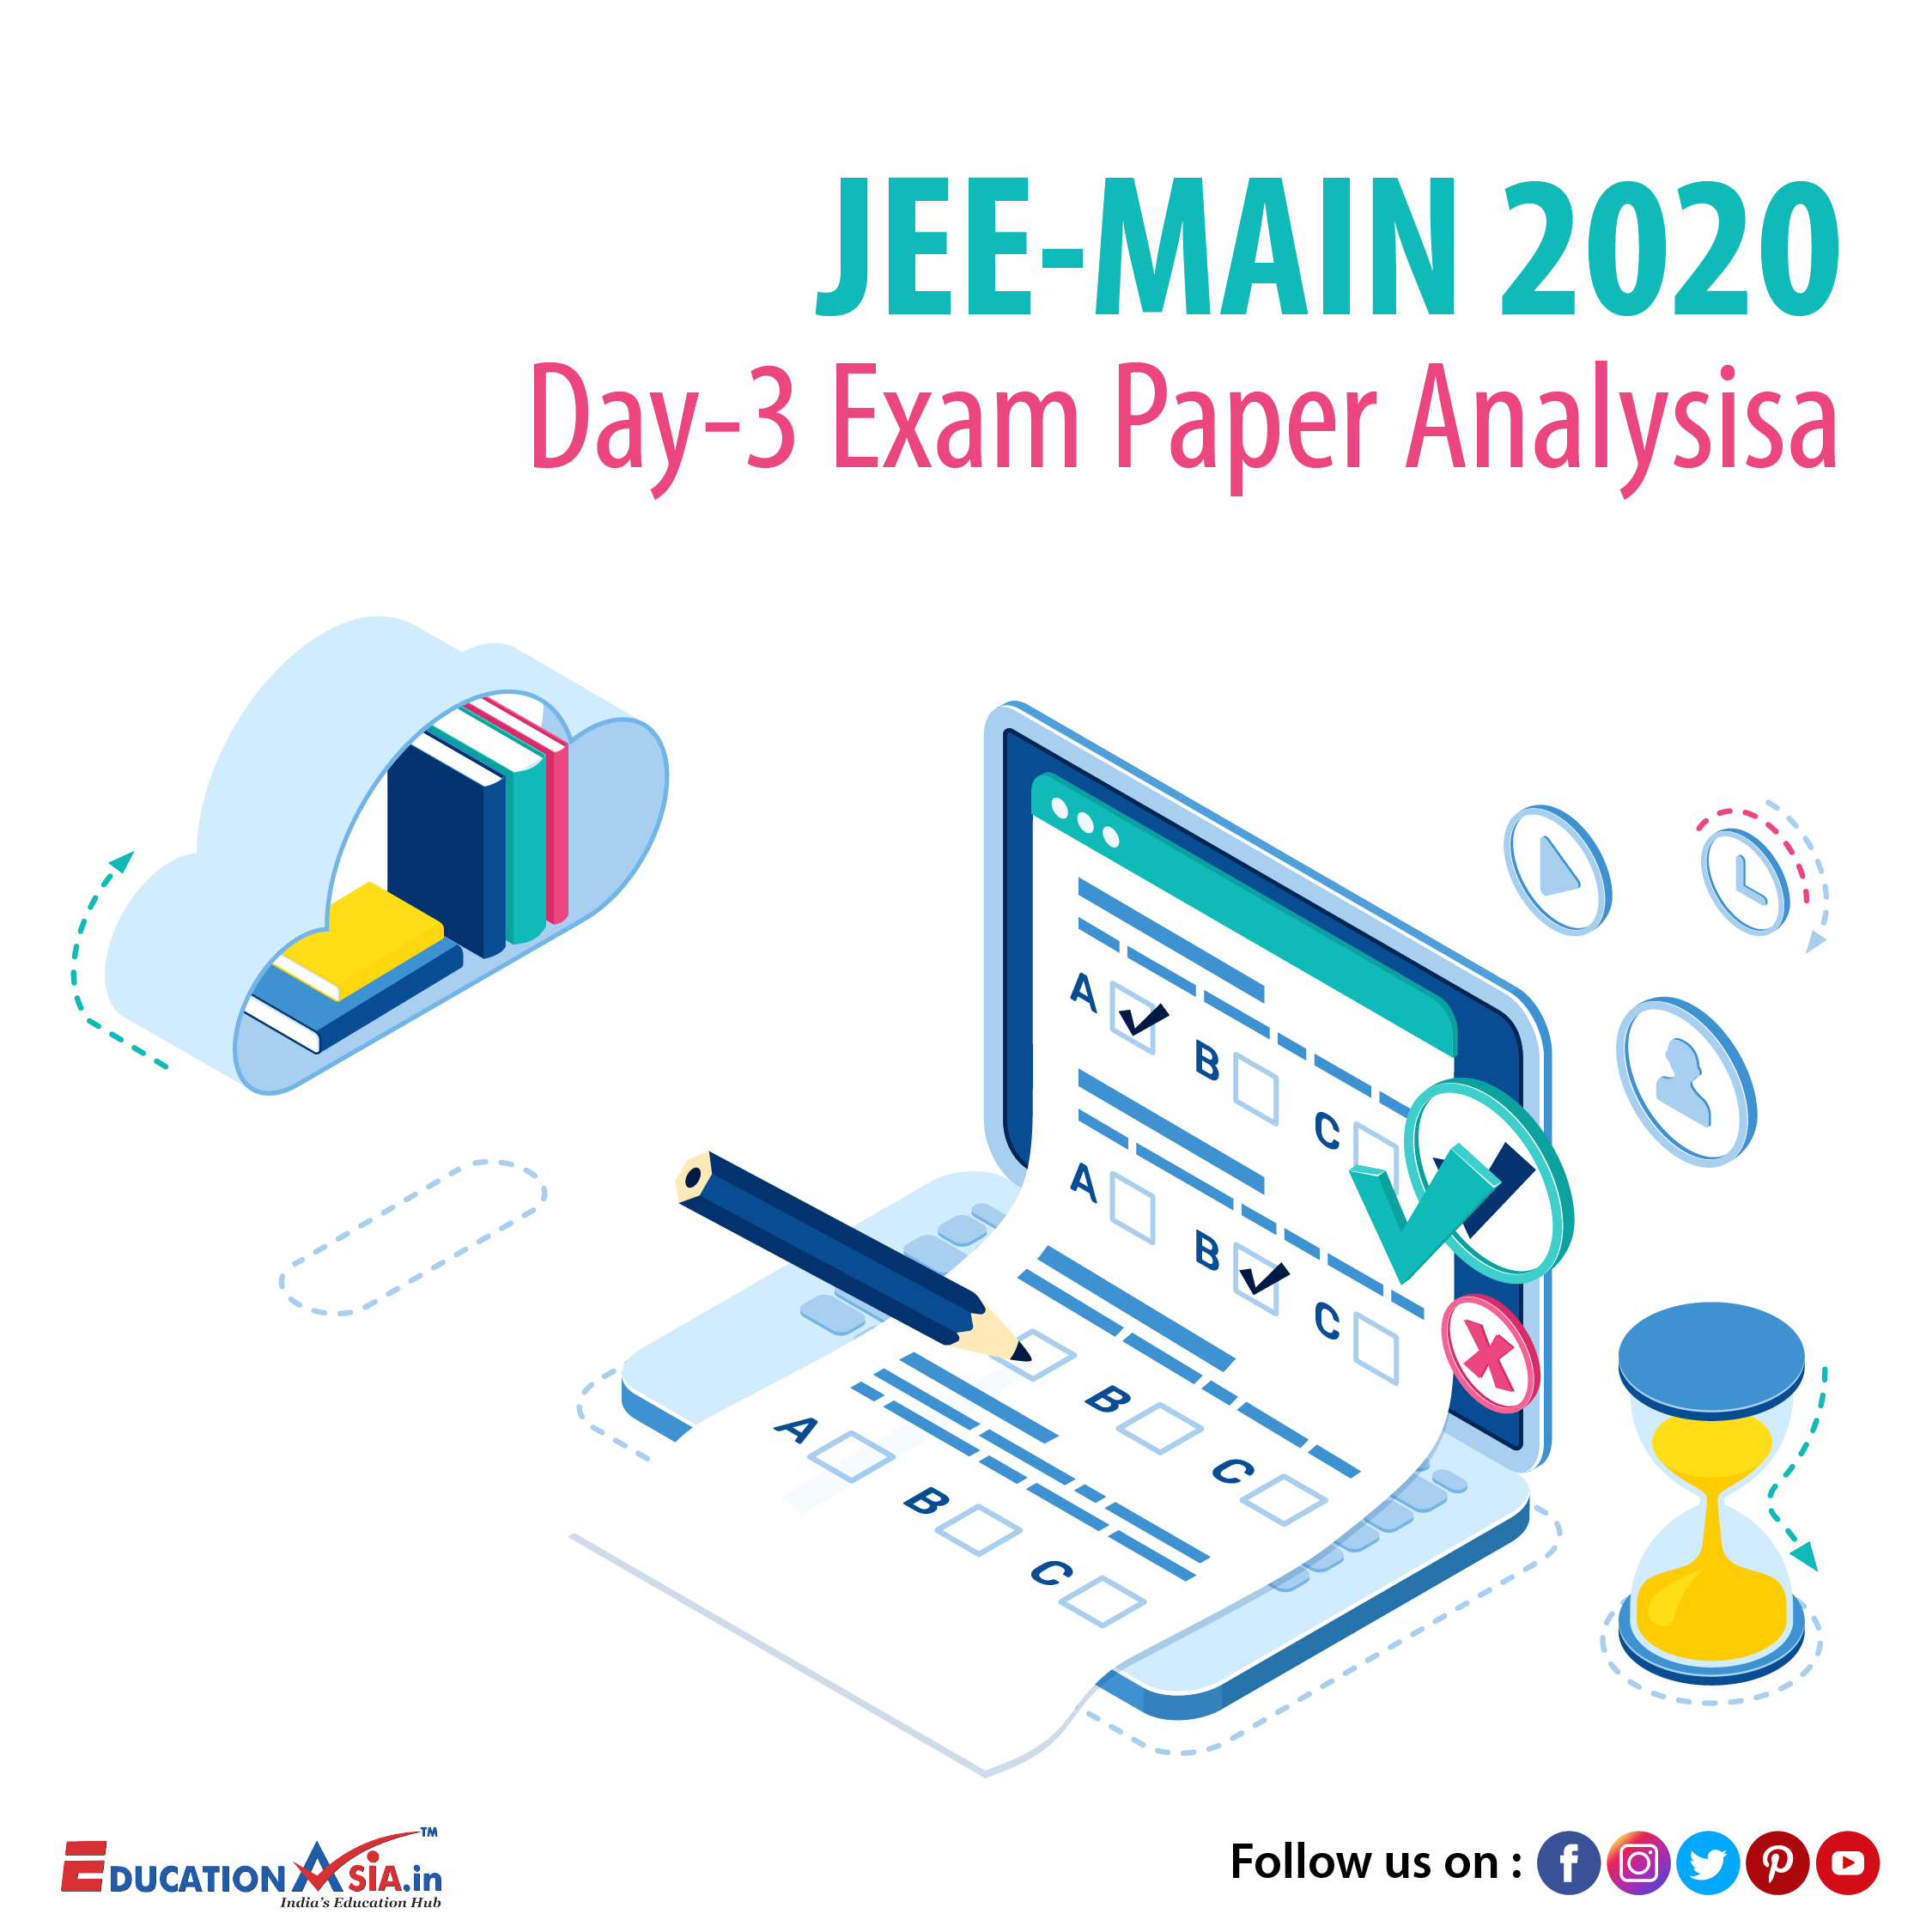 Jee Main Day 3 Analysis In 2020 Exam Papers Education Related Exam